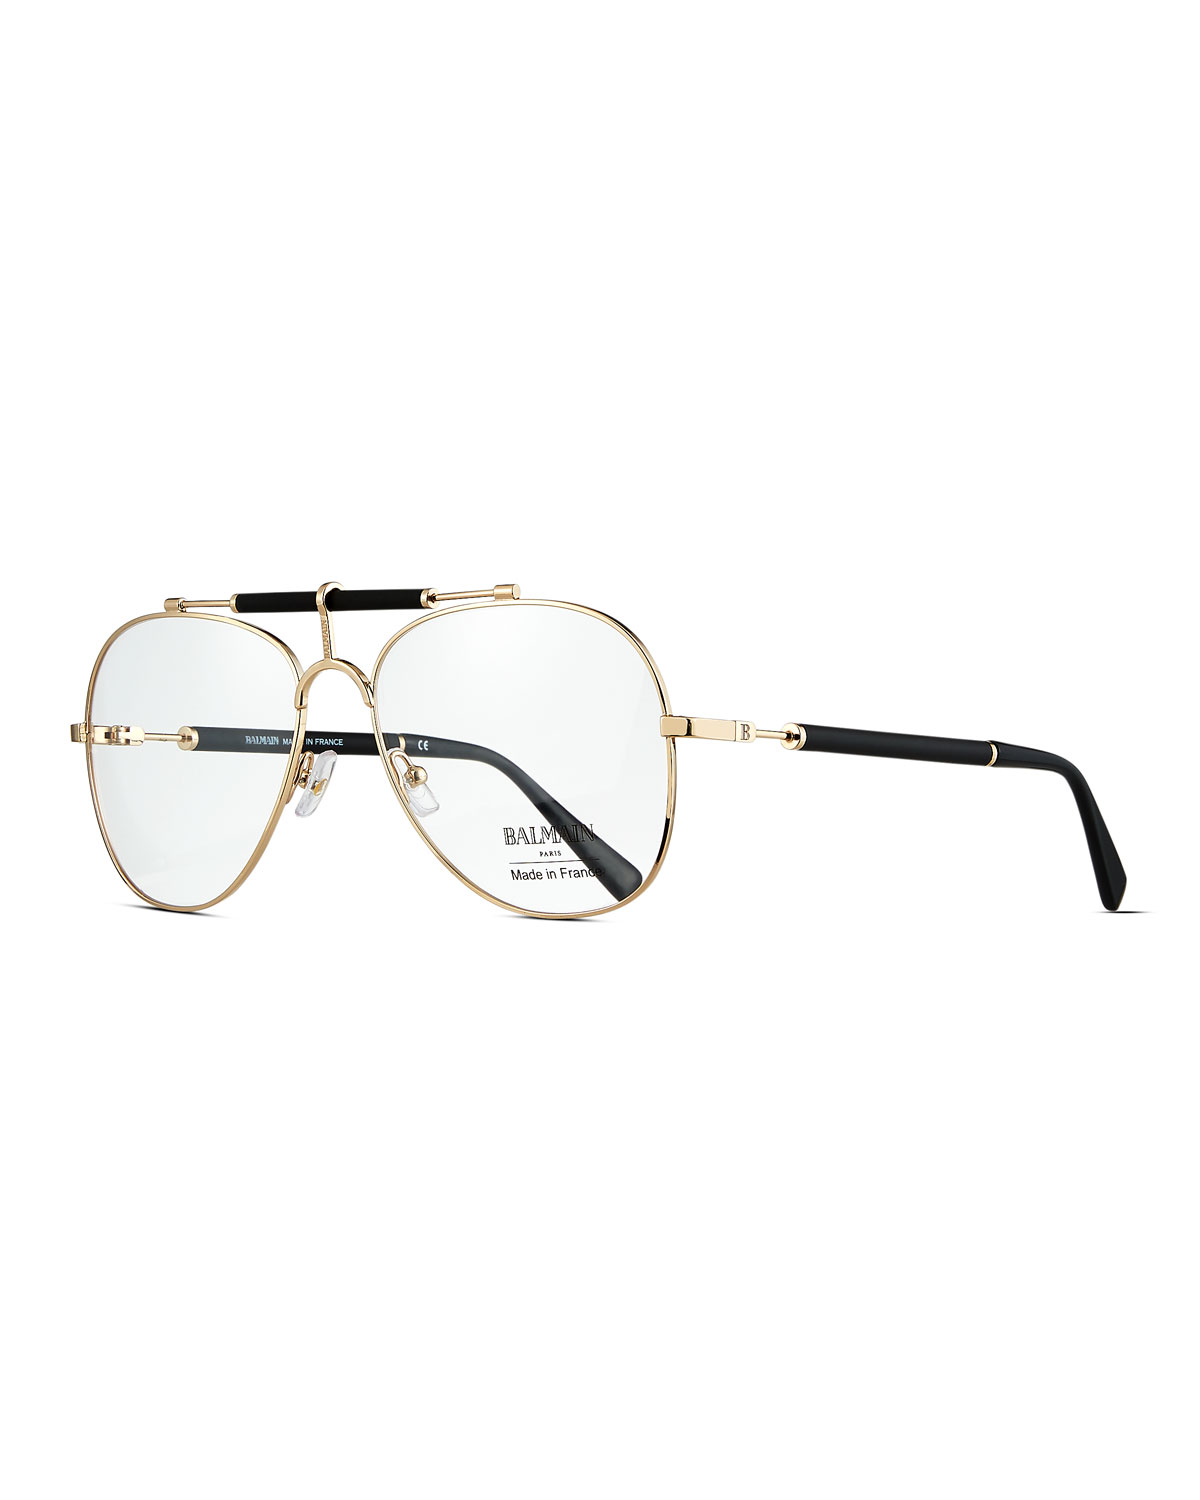 Balmain Metal Aviator Optical Frames | Neiman Marcus